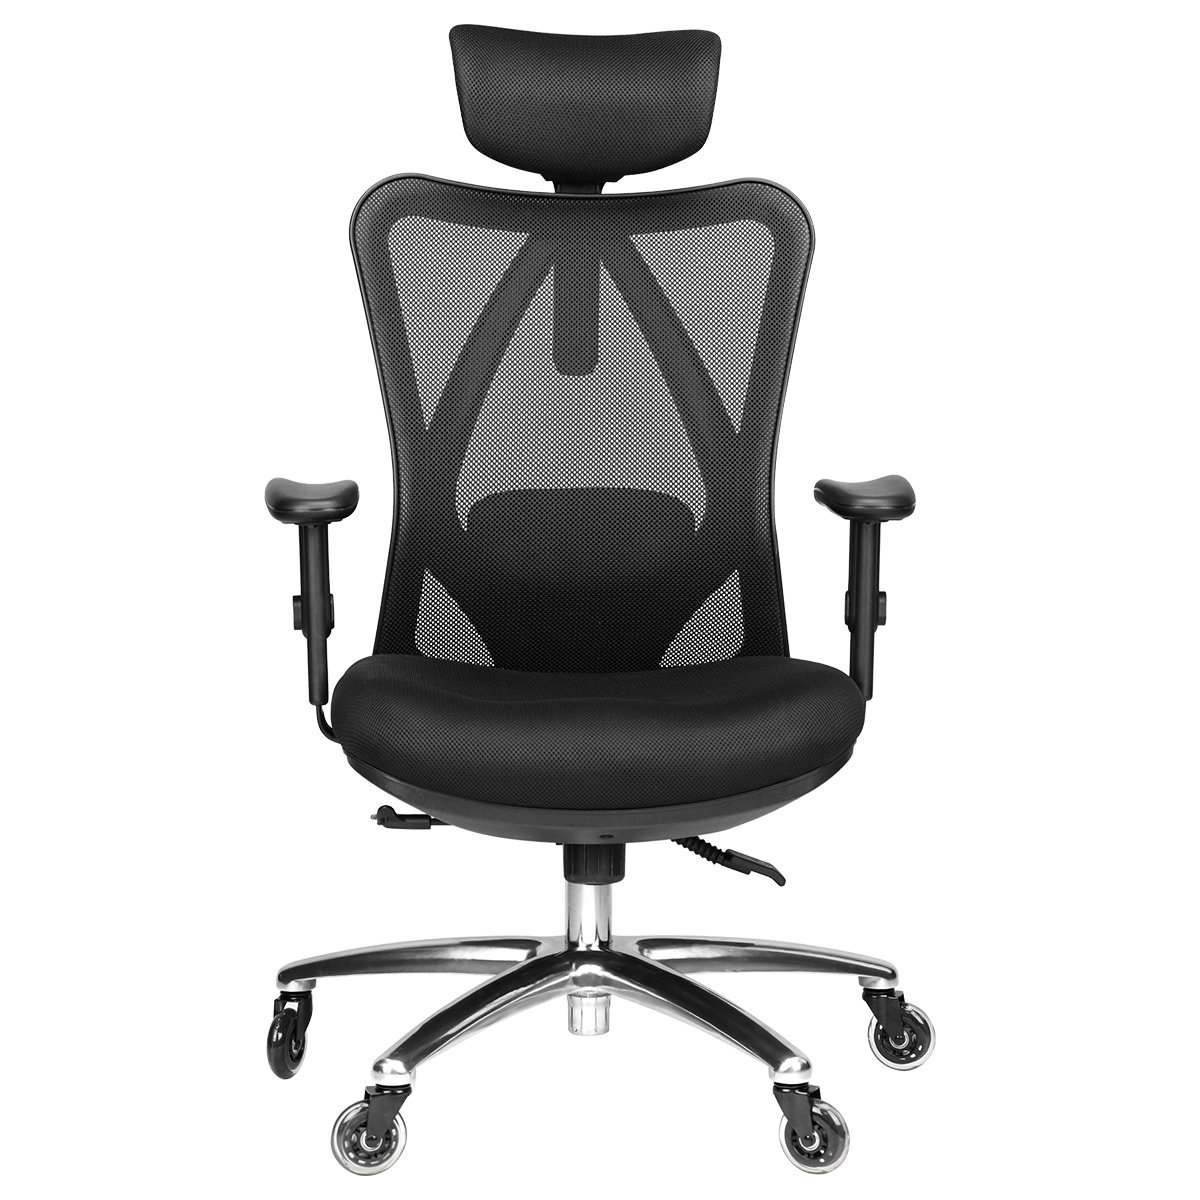 Best Desk Chair For Back Support Best Office Chair For Back Pain Reviews Best Office